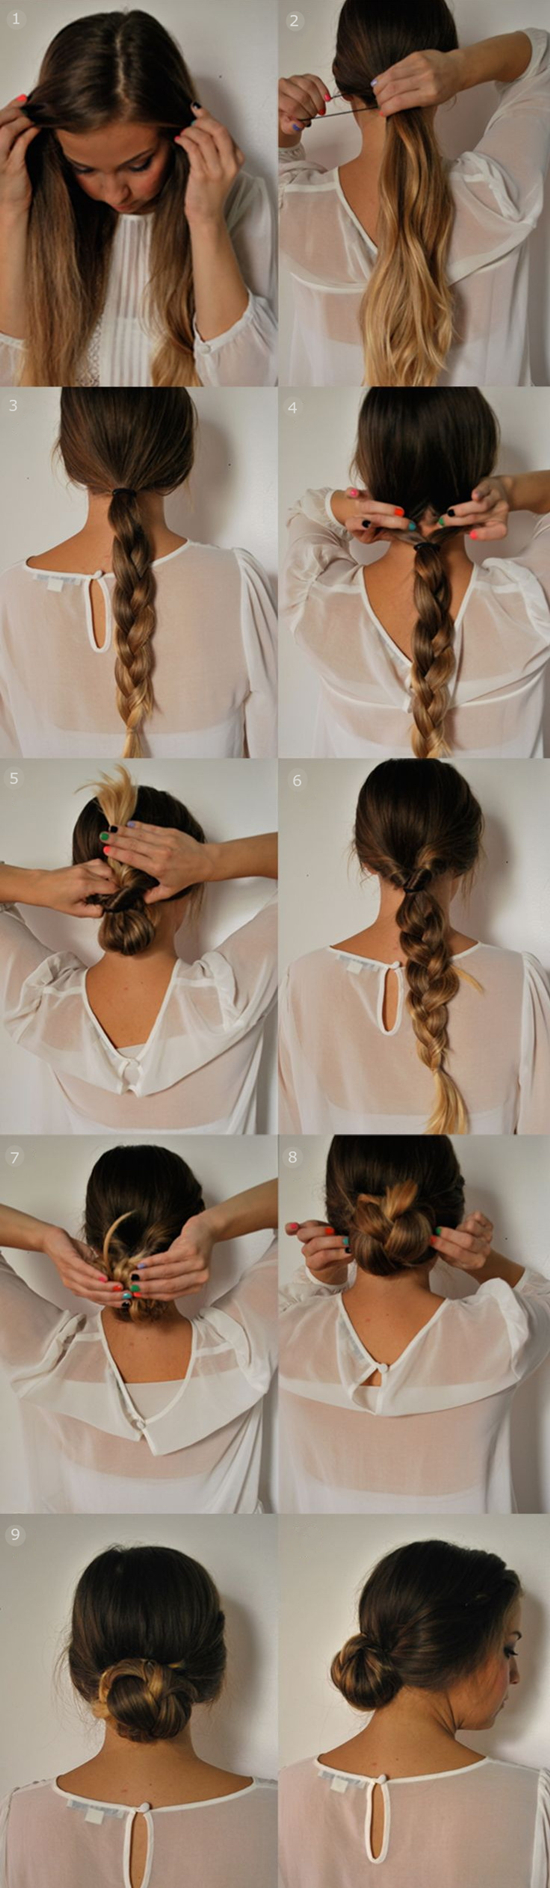 braided-ponytail-updo-tutorial-by-clip-in-22-inch-brown-ombre-color-human-hair-extension-for-short-hair